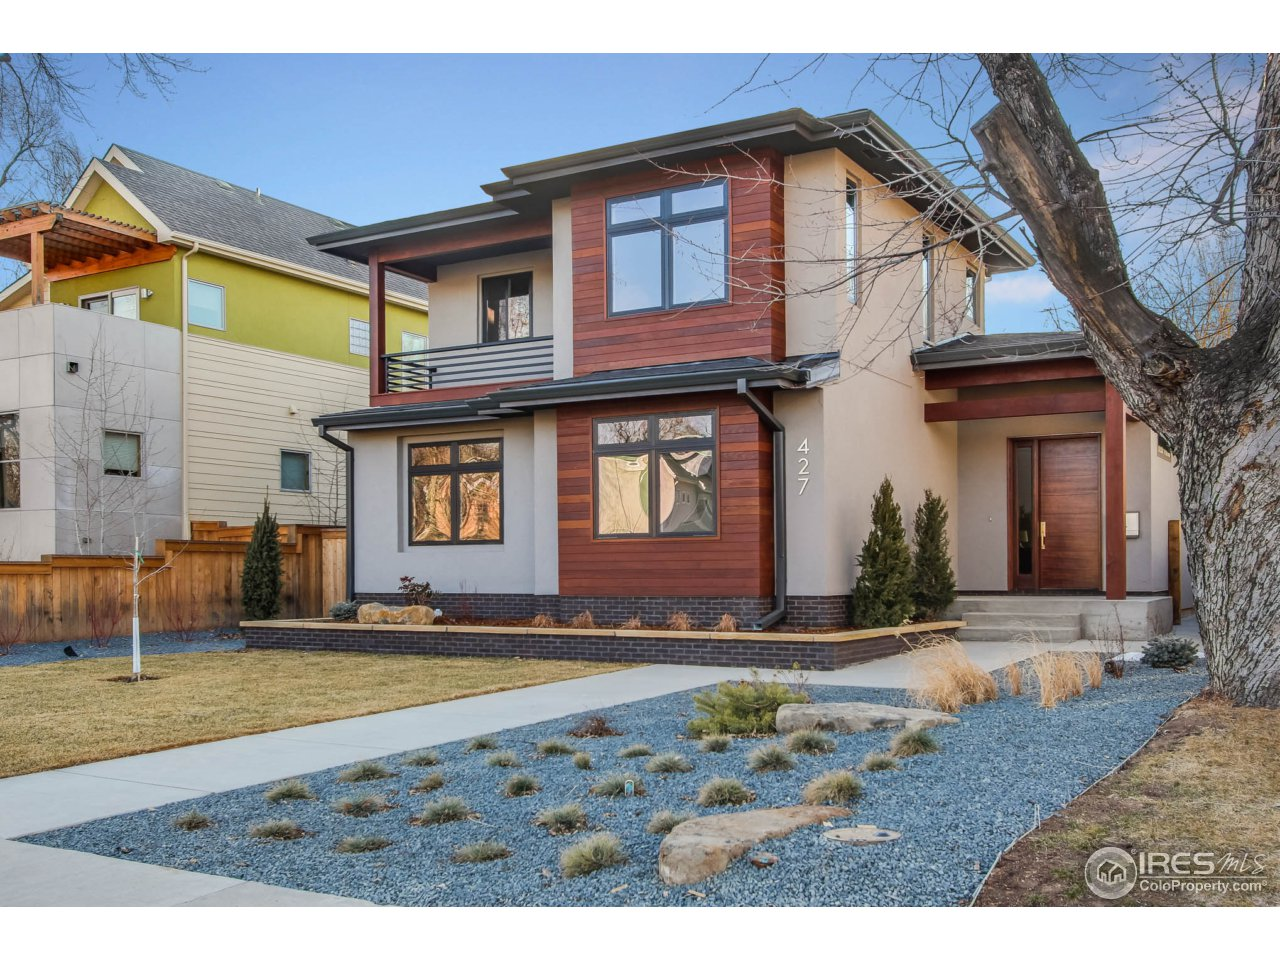 427 Wood St, Fort Collins CO 80521